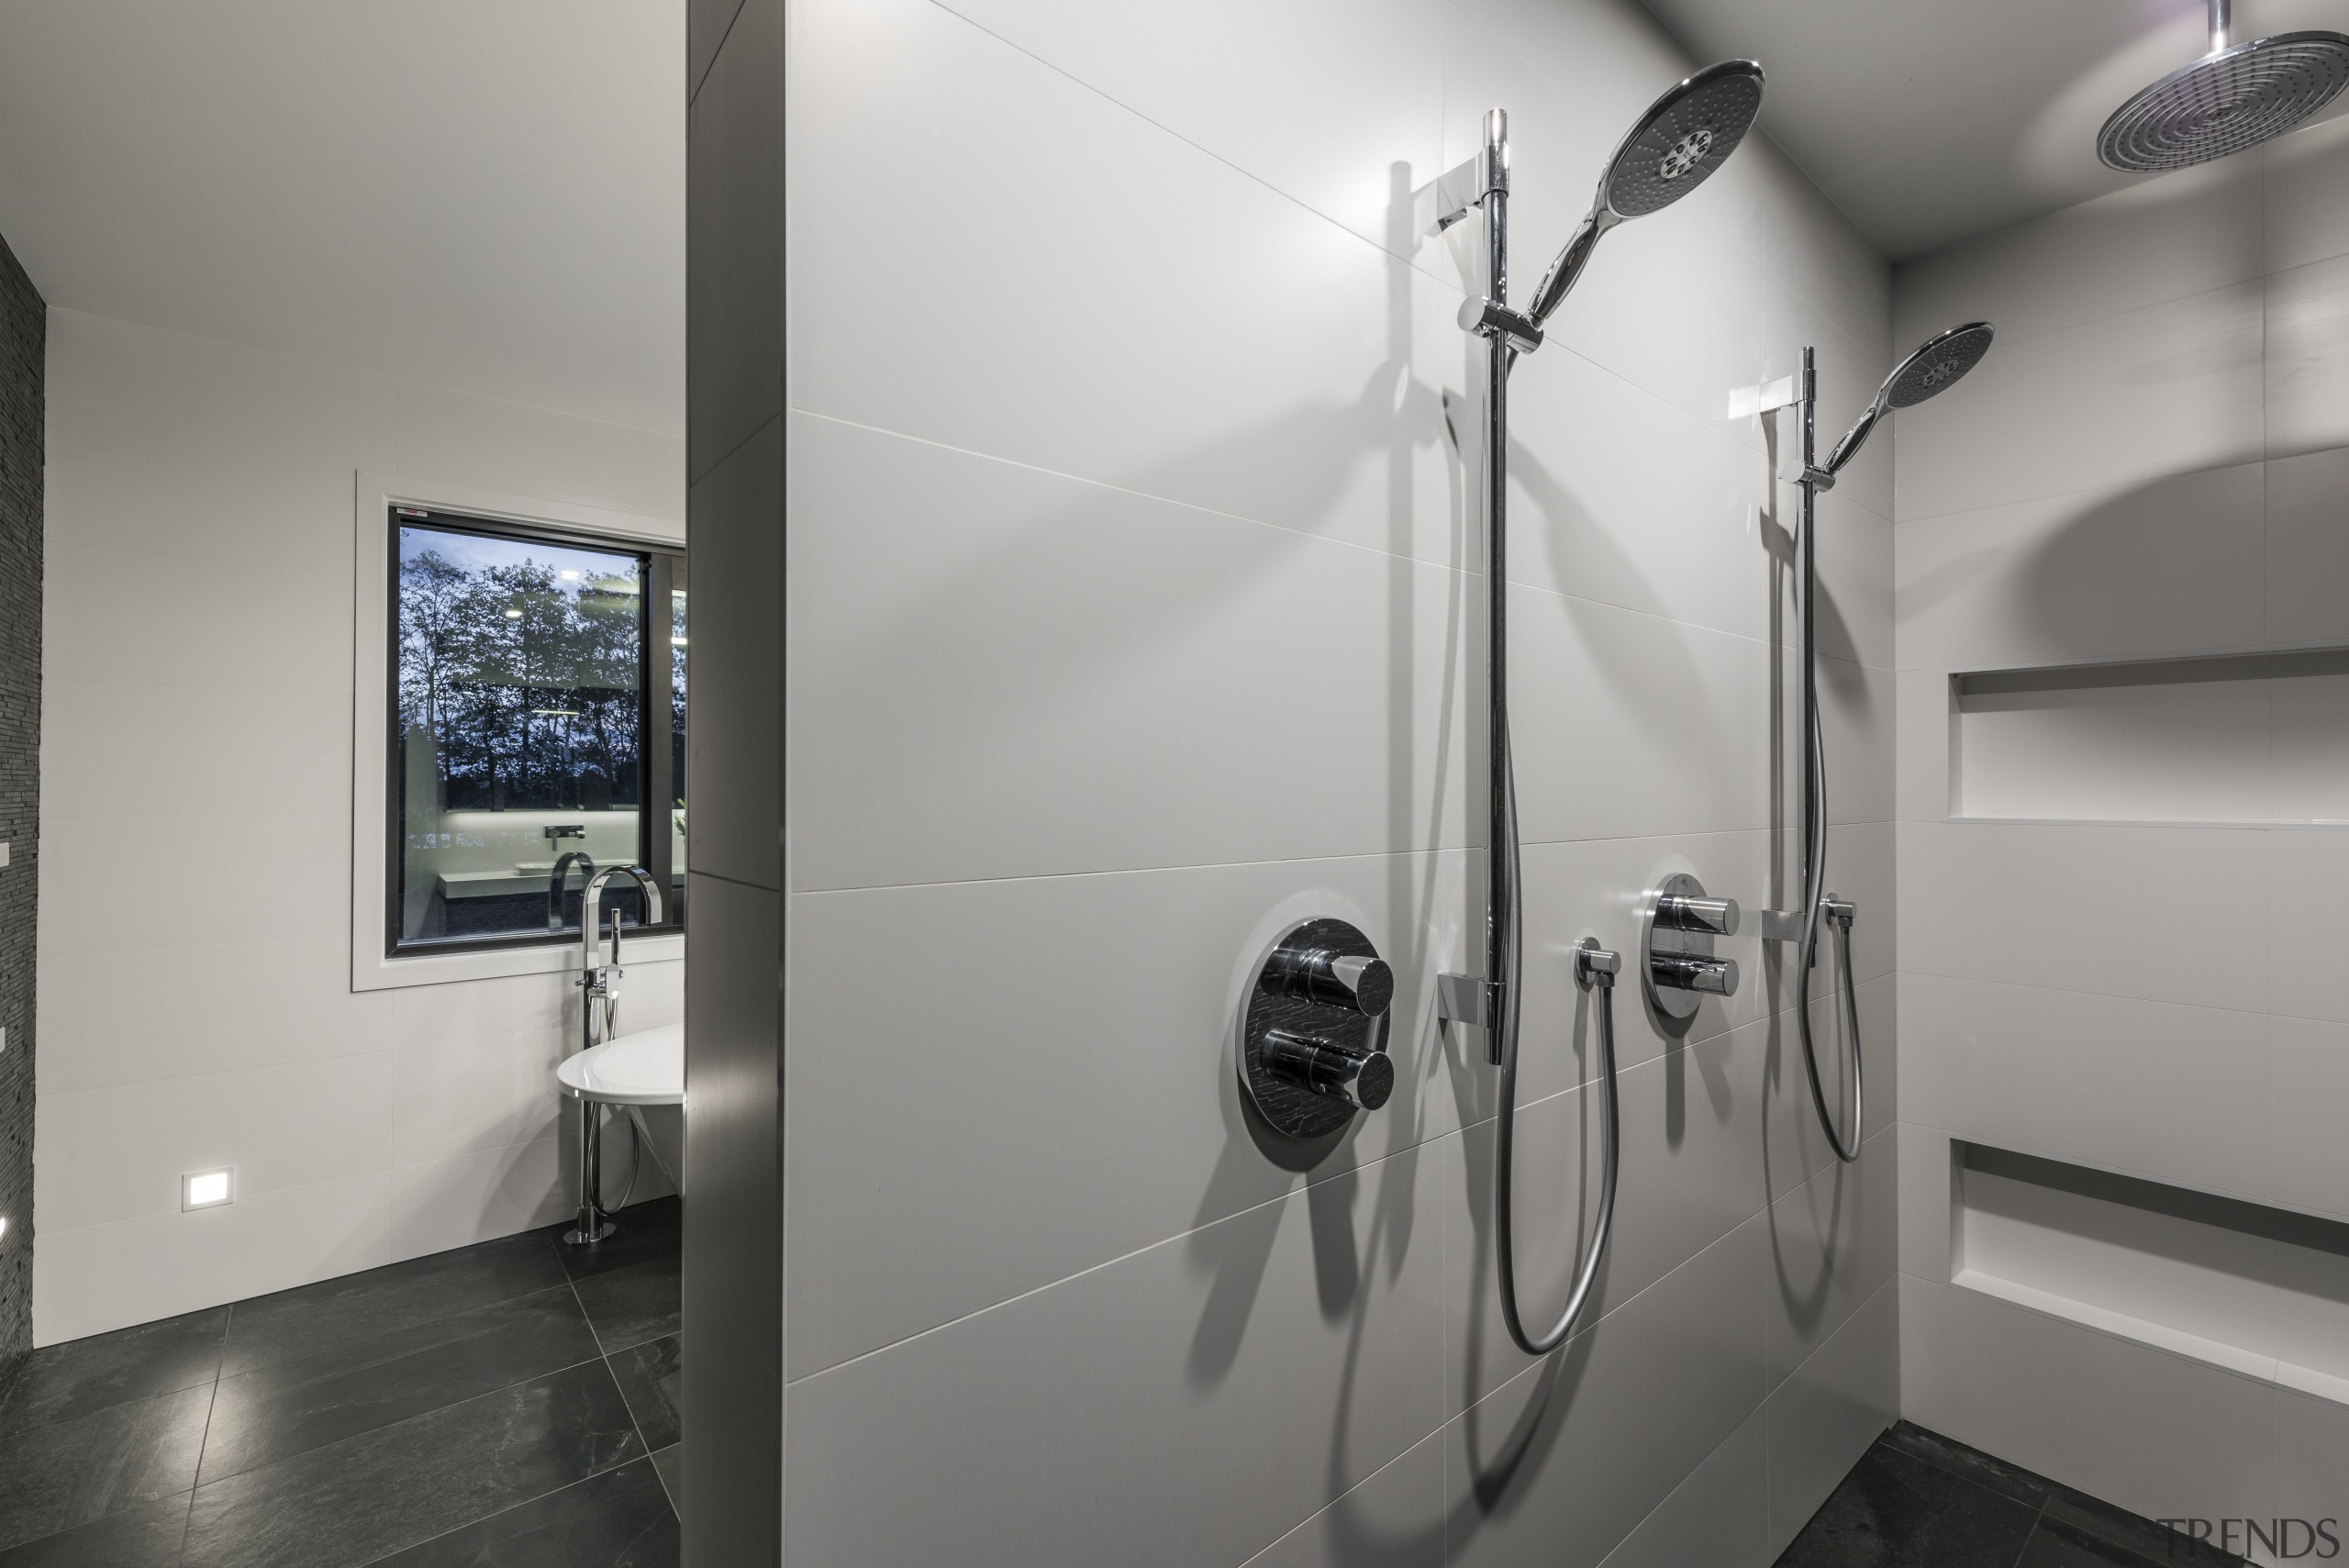 This bathrooms layout provides a clever use of architecture, bathroom, interior design, product design, tap, gray